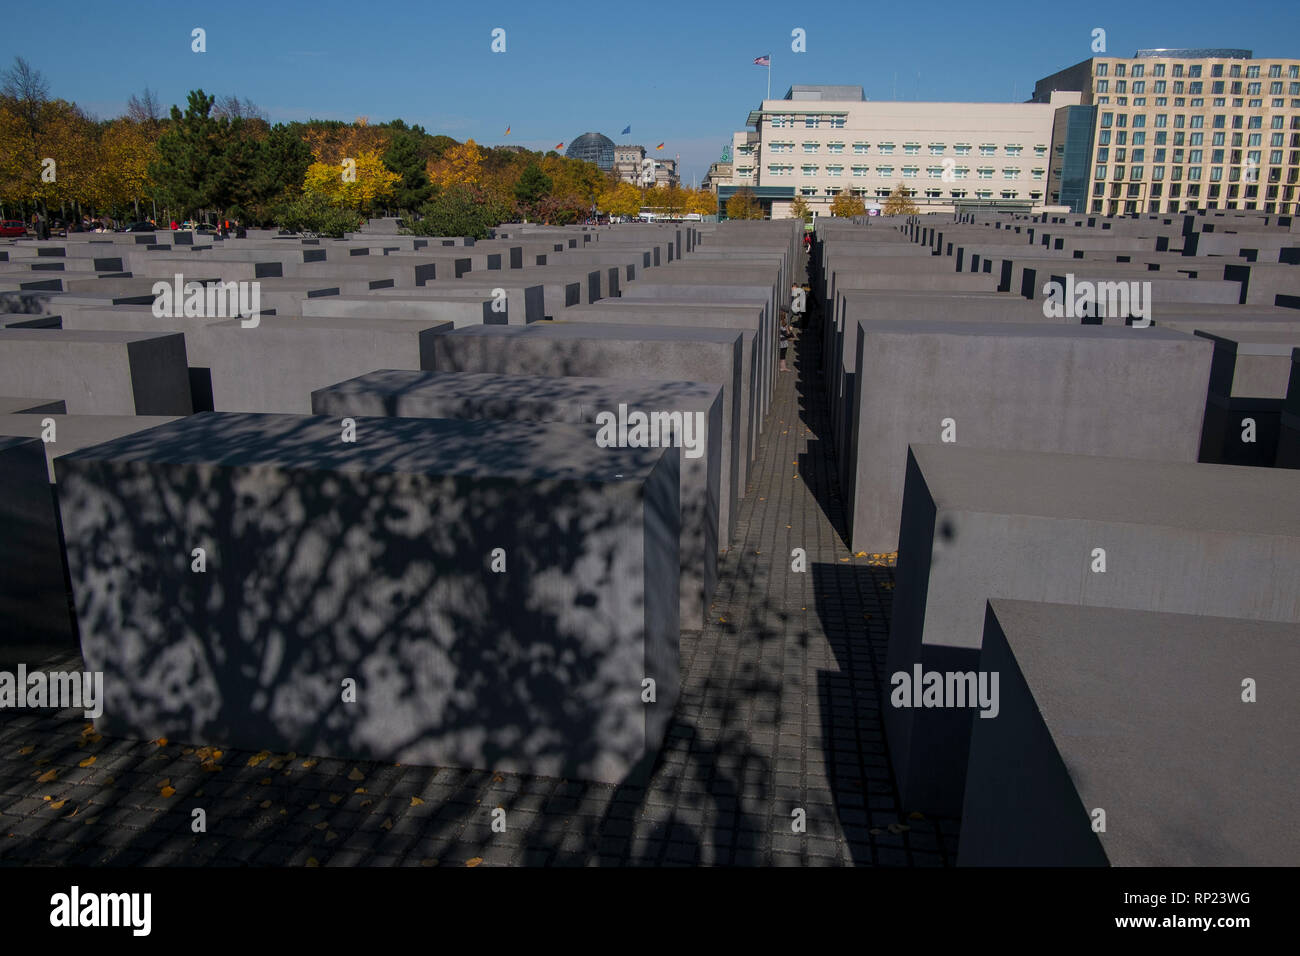 Memorial to the Murdered Jew of Europe, designed by Peter Eisenman, in Berlin, Germany. - Stock Image